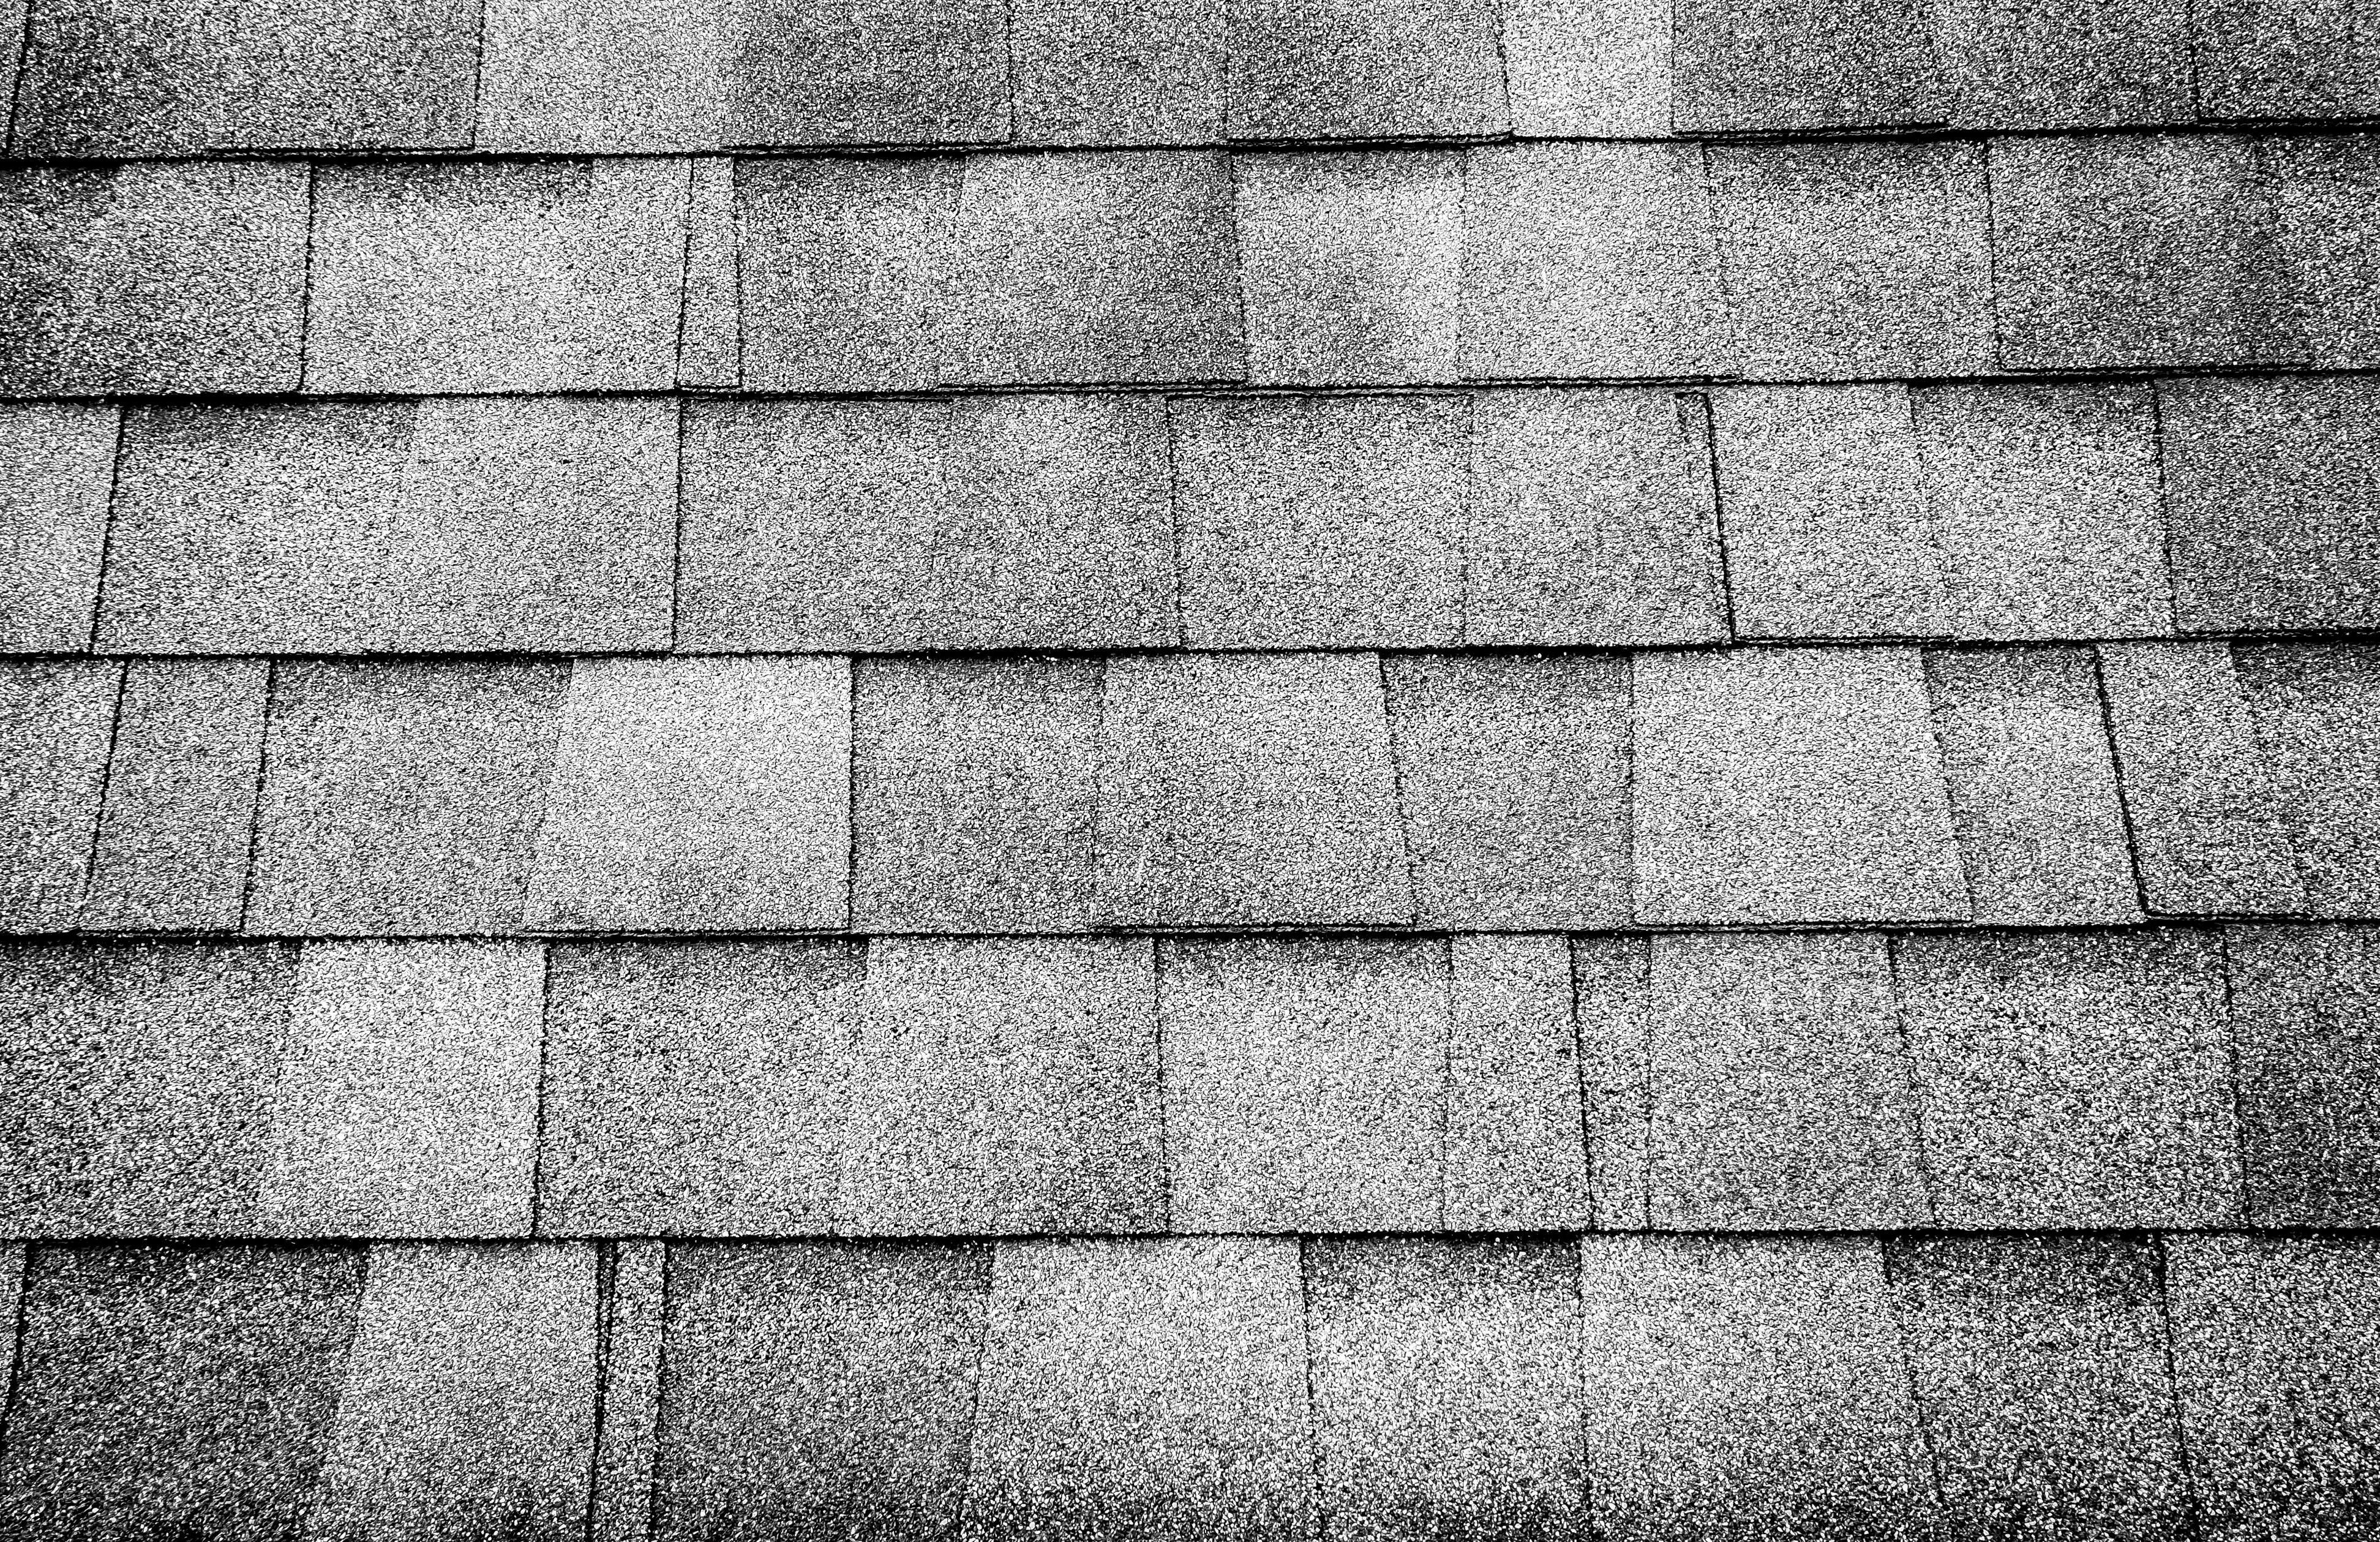 41205319 Black And White Photo Close Up Roof Tile